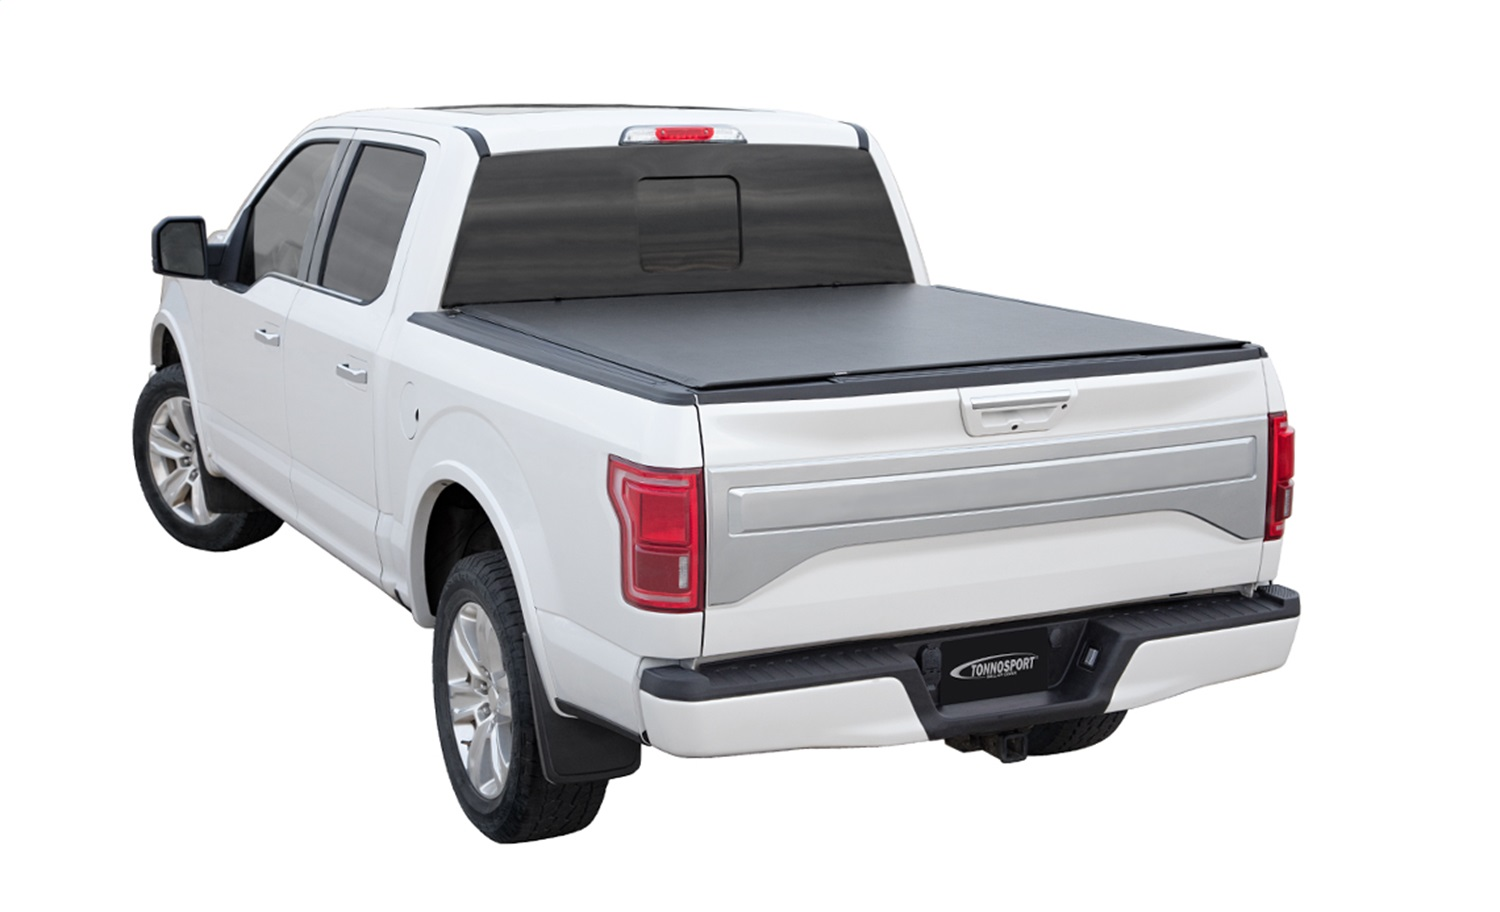 Access Cover 22010269 TONNOSPORT Roll-Up Cover Fits 04-14 F-150 Mark LT